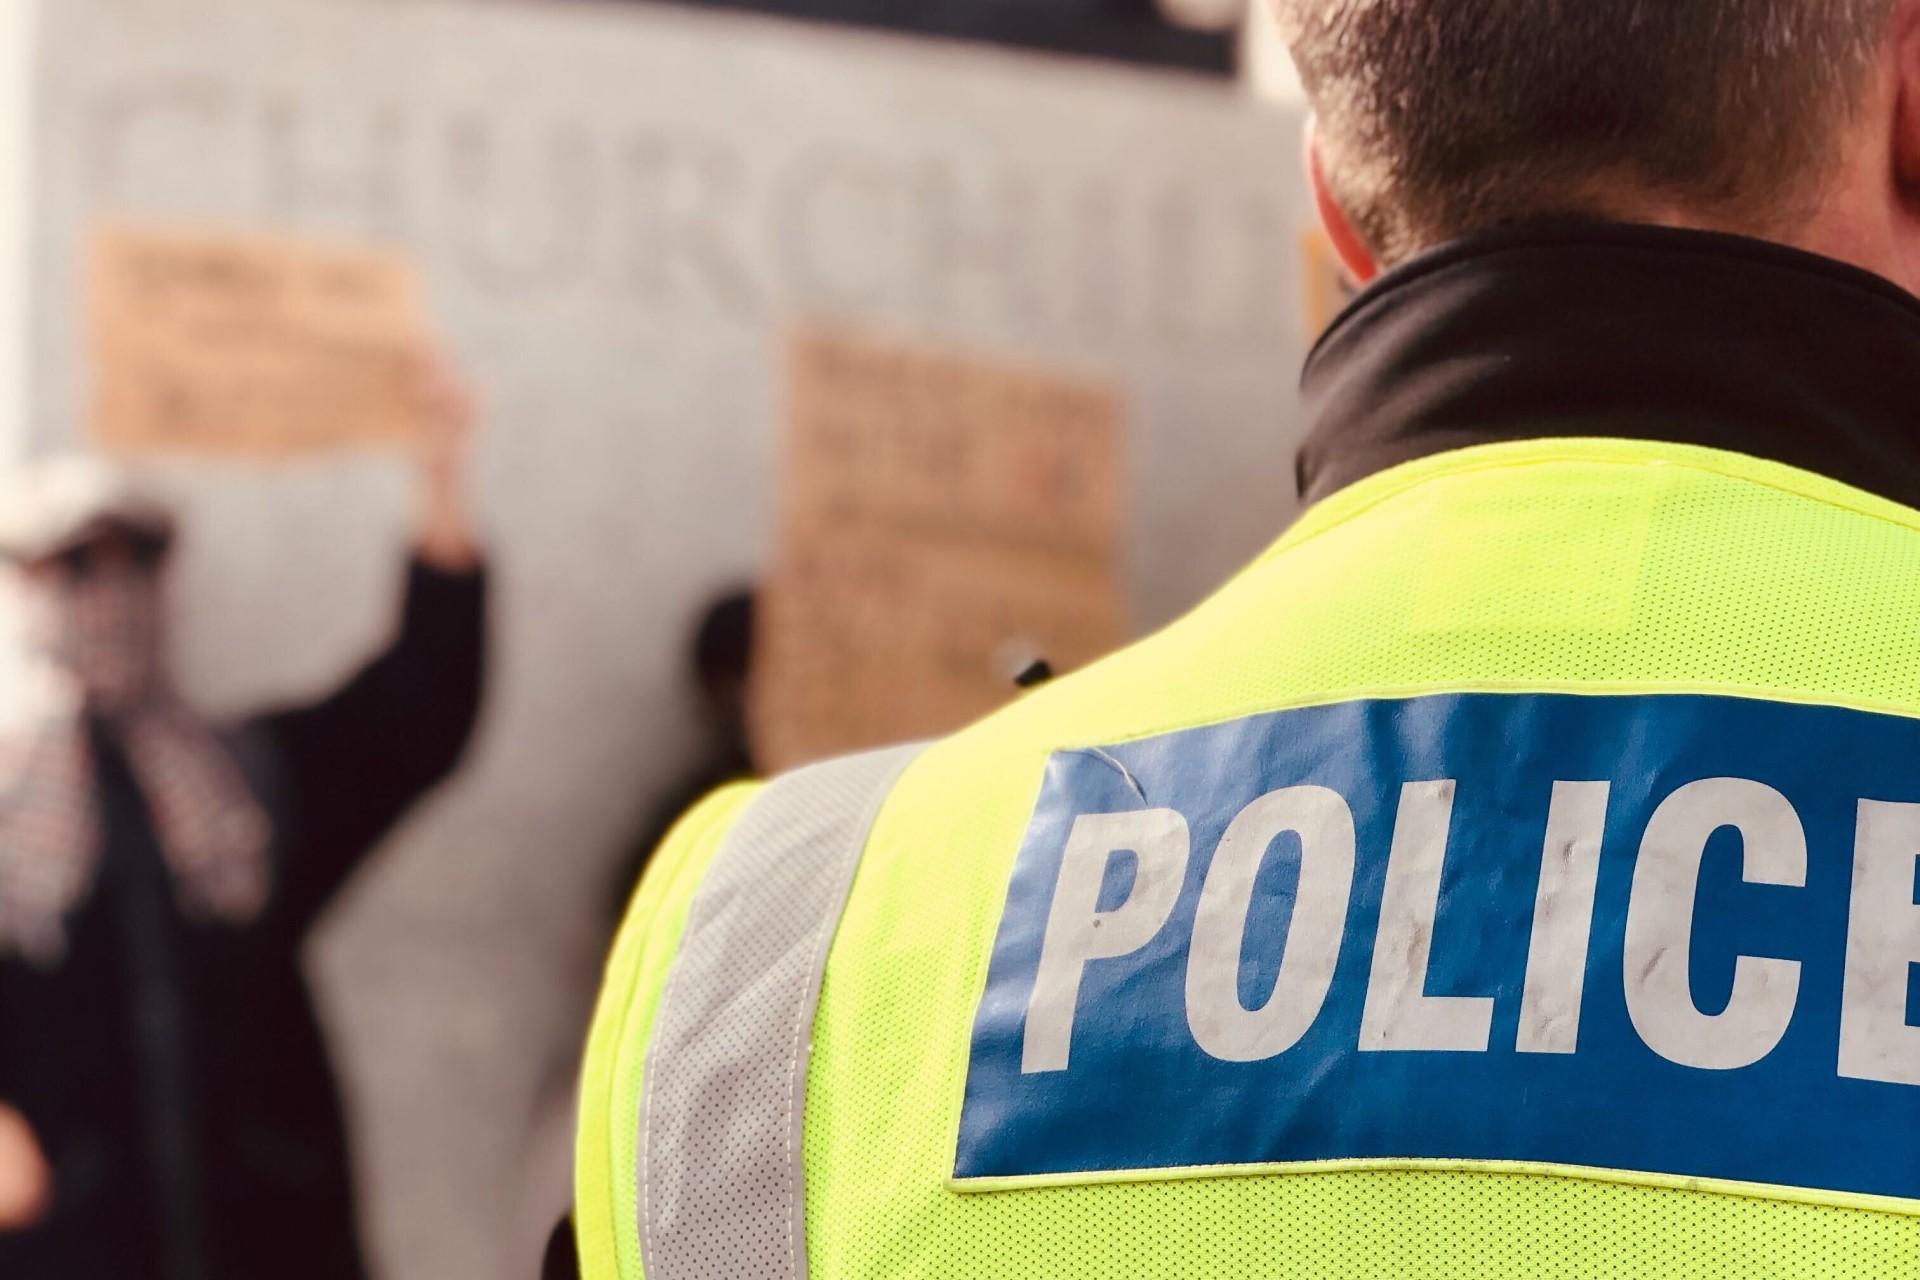 Black officers make up just 1.2% of the police forces.